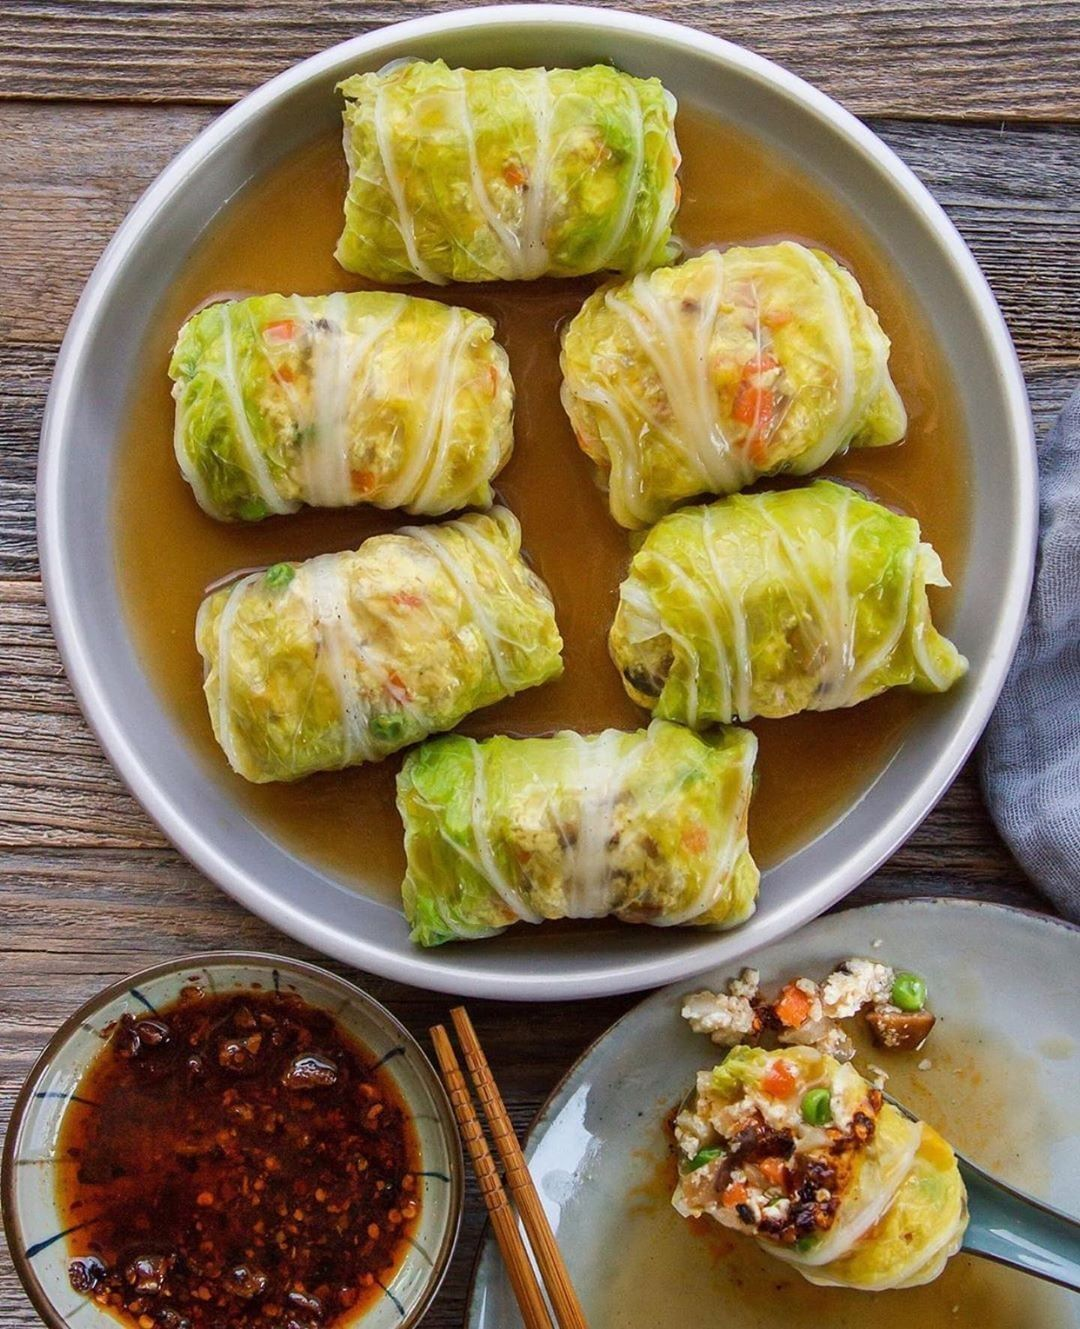 Vegan Recipes Lifestyle On Instagram Stuffed Cabbage Rolls By Woon Heng Recipe Yields 12 In 2020 Napa Cabbage Recipes Cabbage Rolls Vegan Asian Recipes